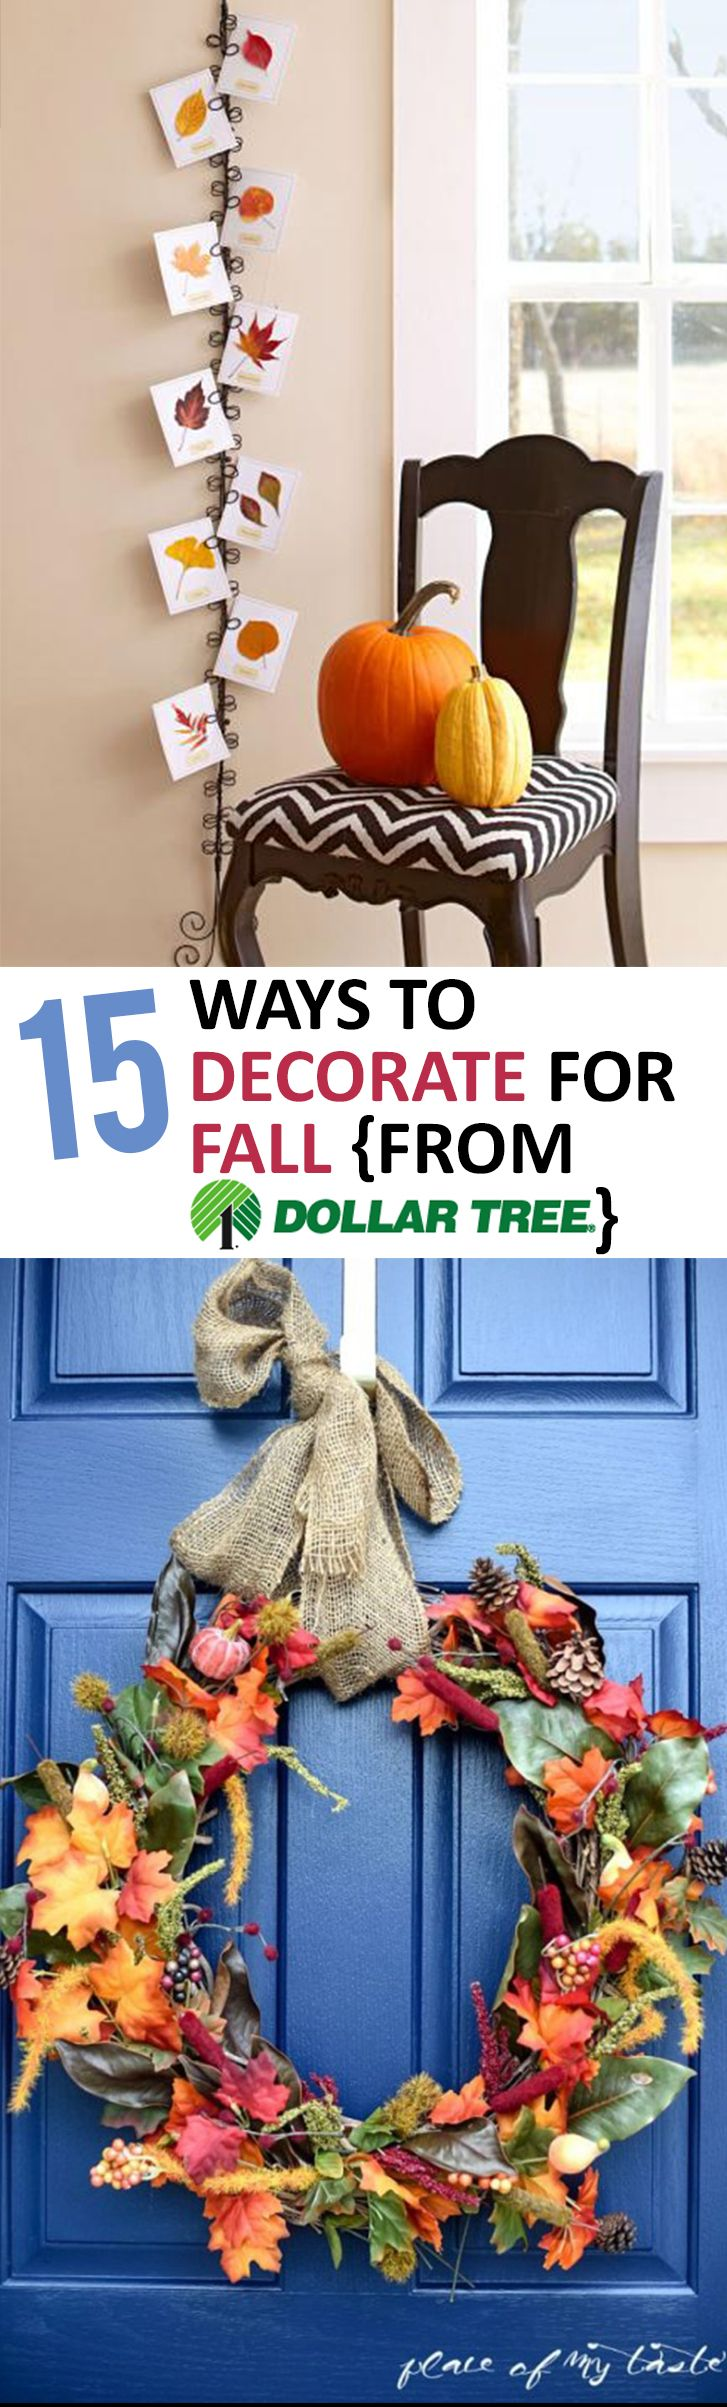 15 Ways to Decorate for Fall {From Dollar Tree